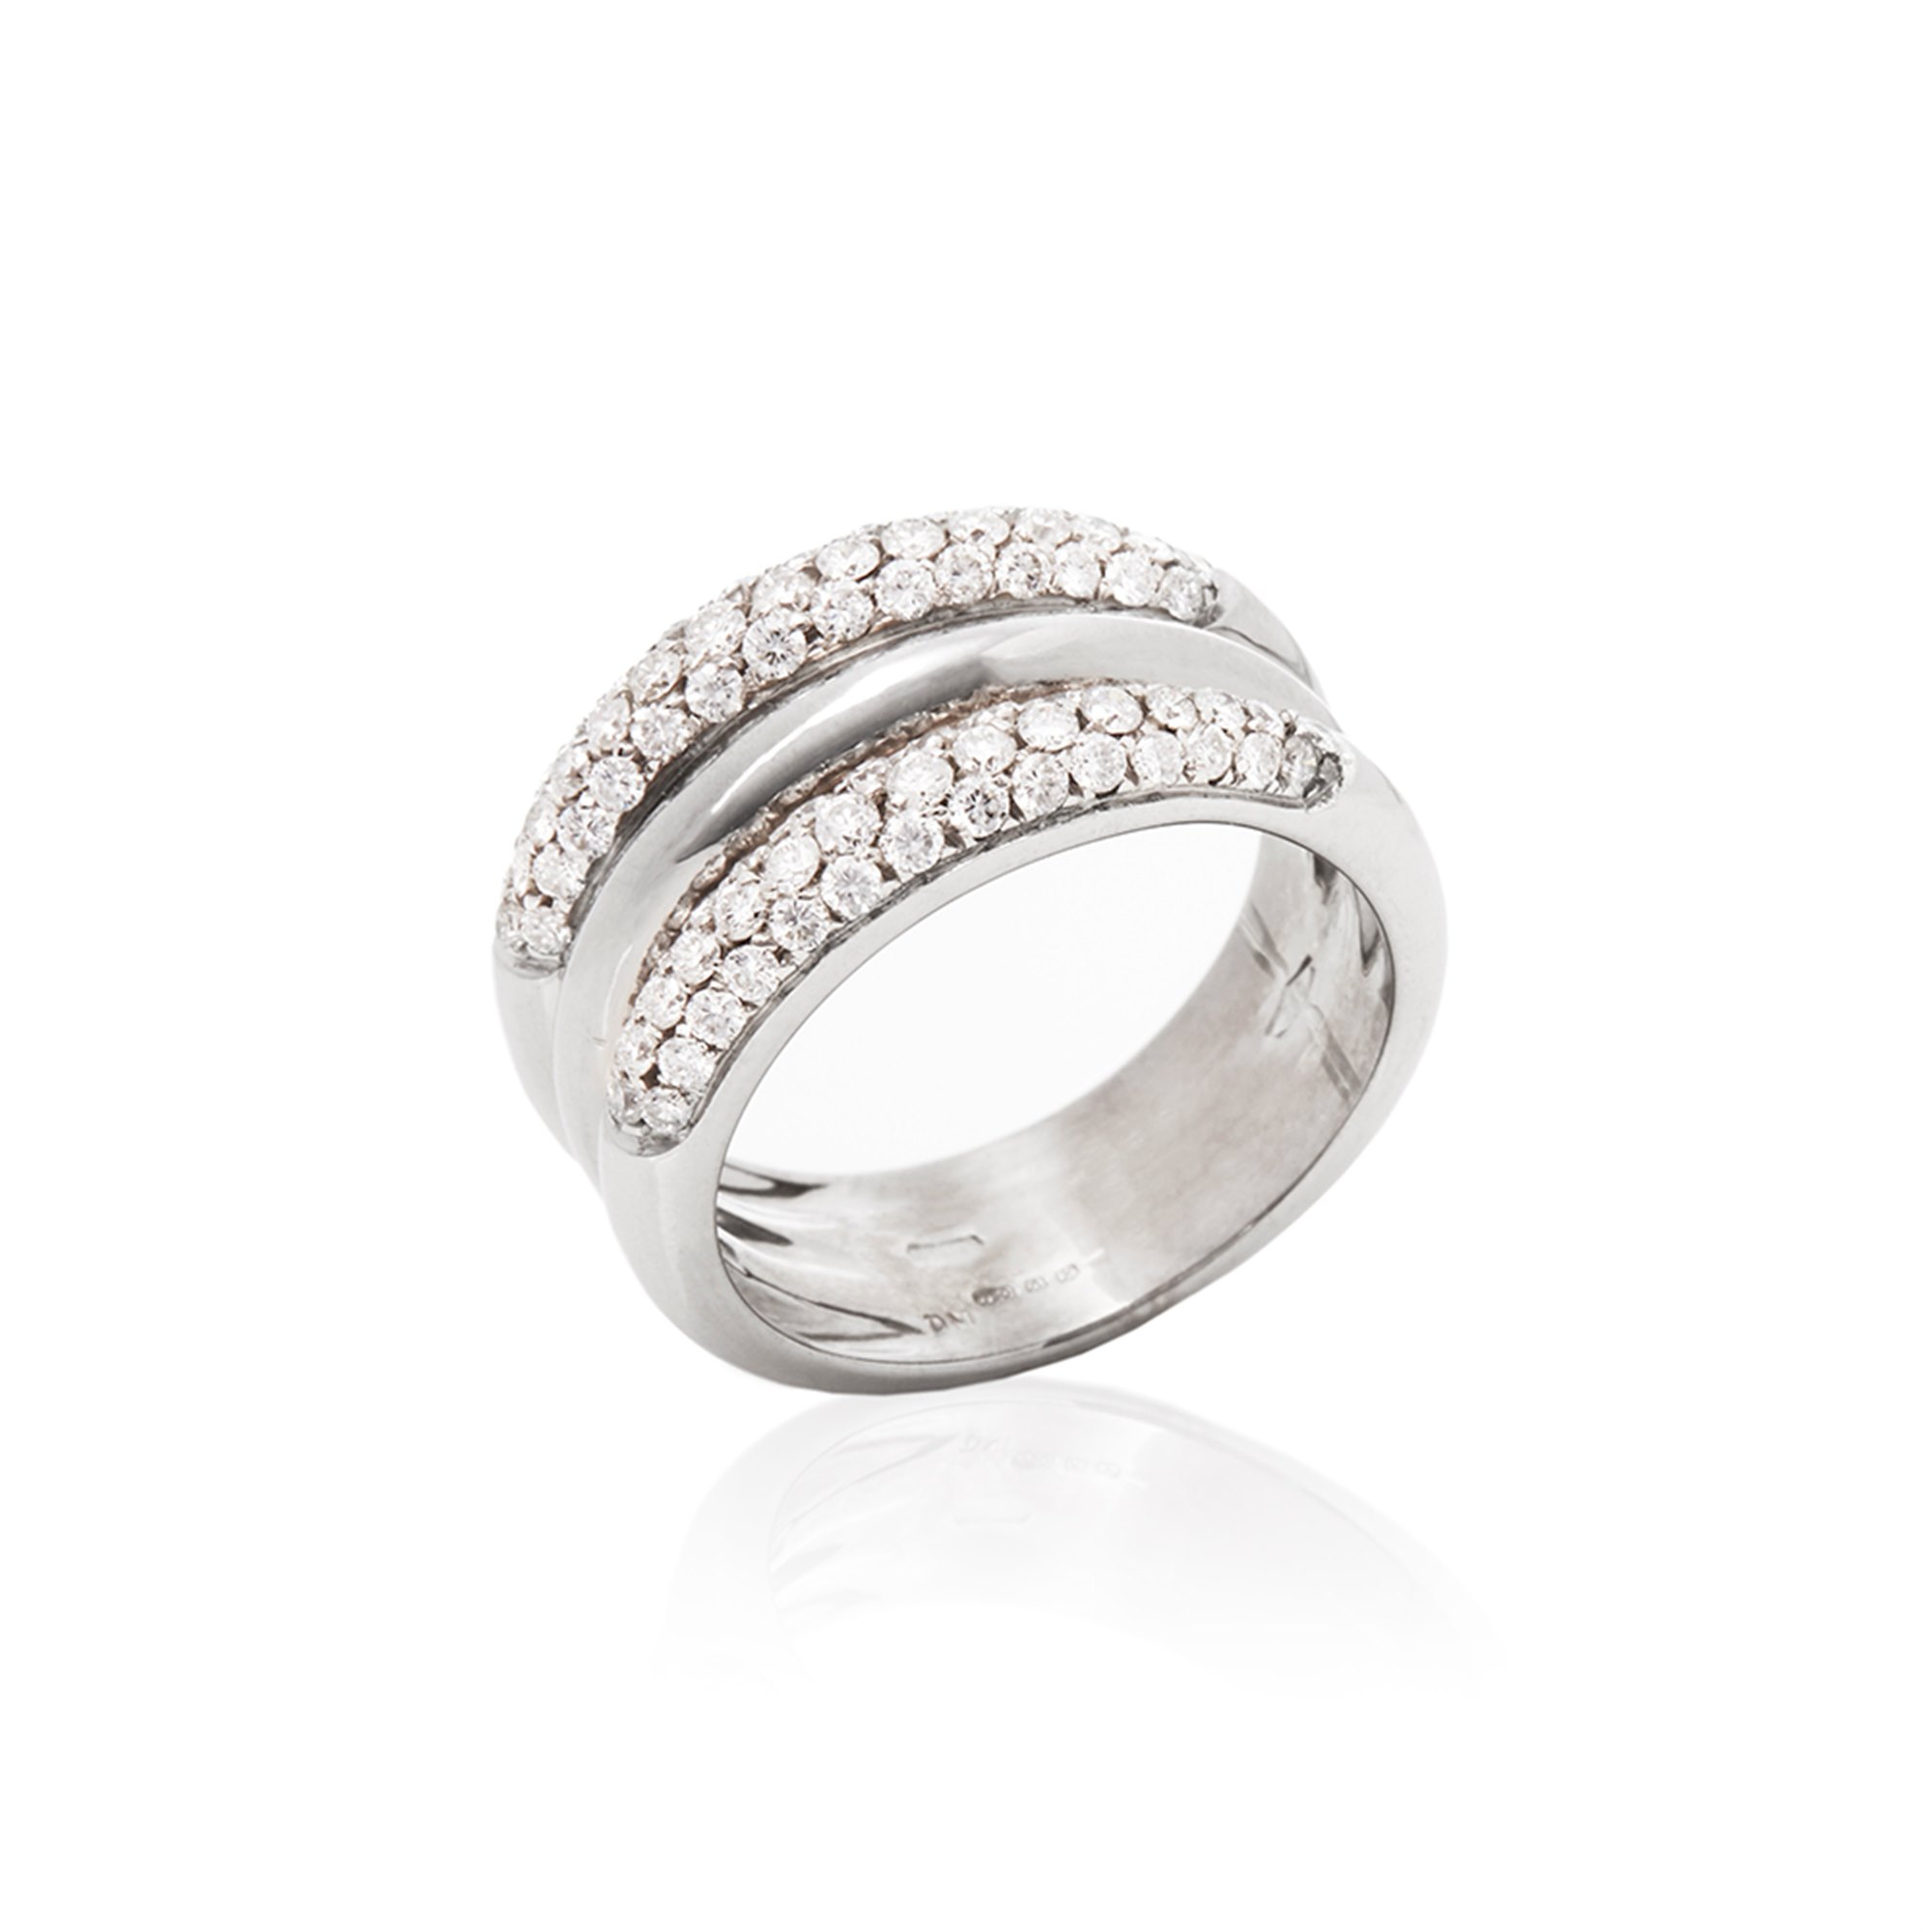 18k White Gold Diamond Signature Band Throughout Best And Newest Signature Bands Ring (View 15 of 25)